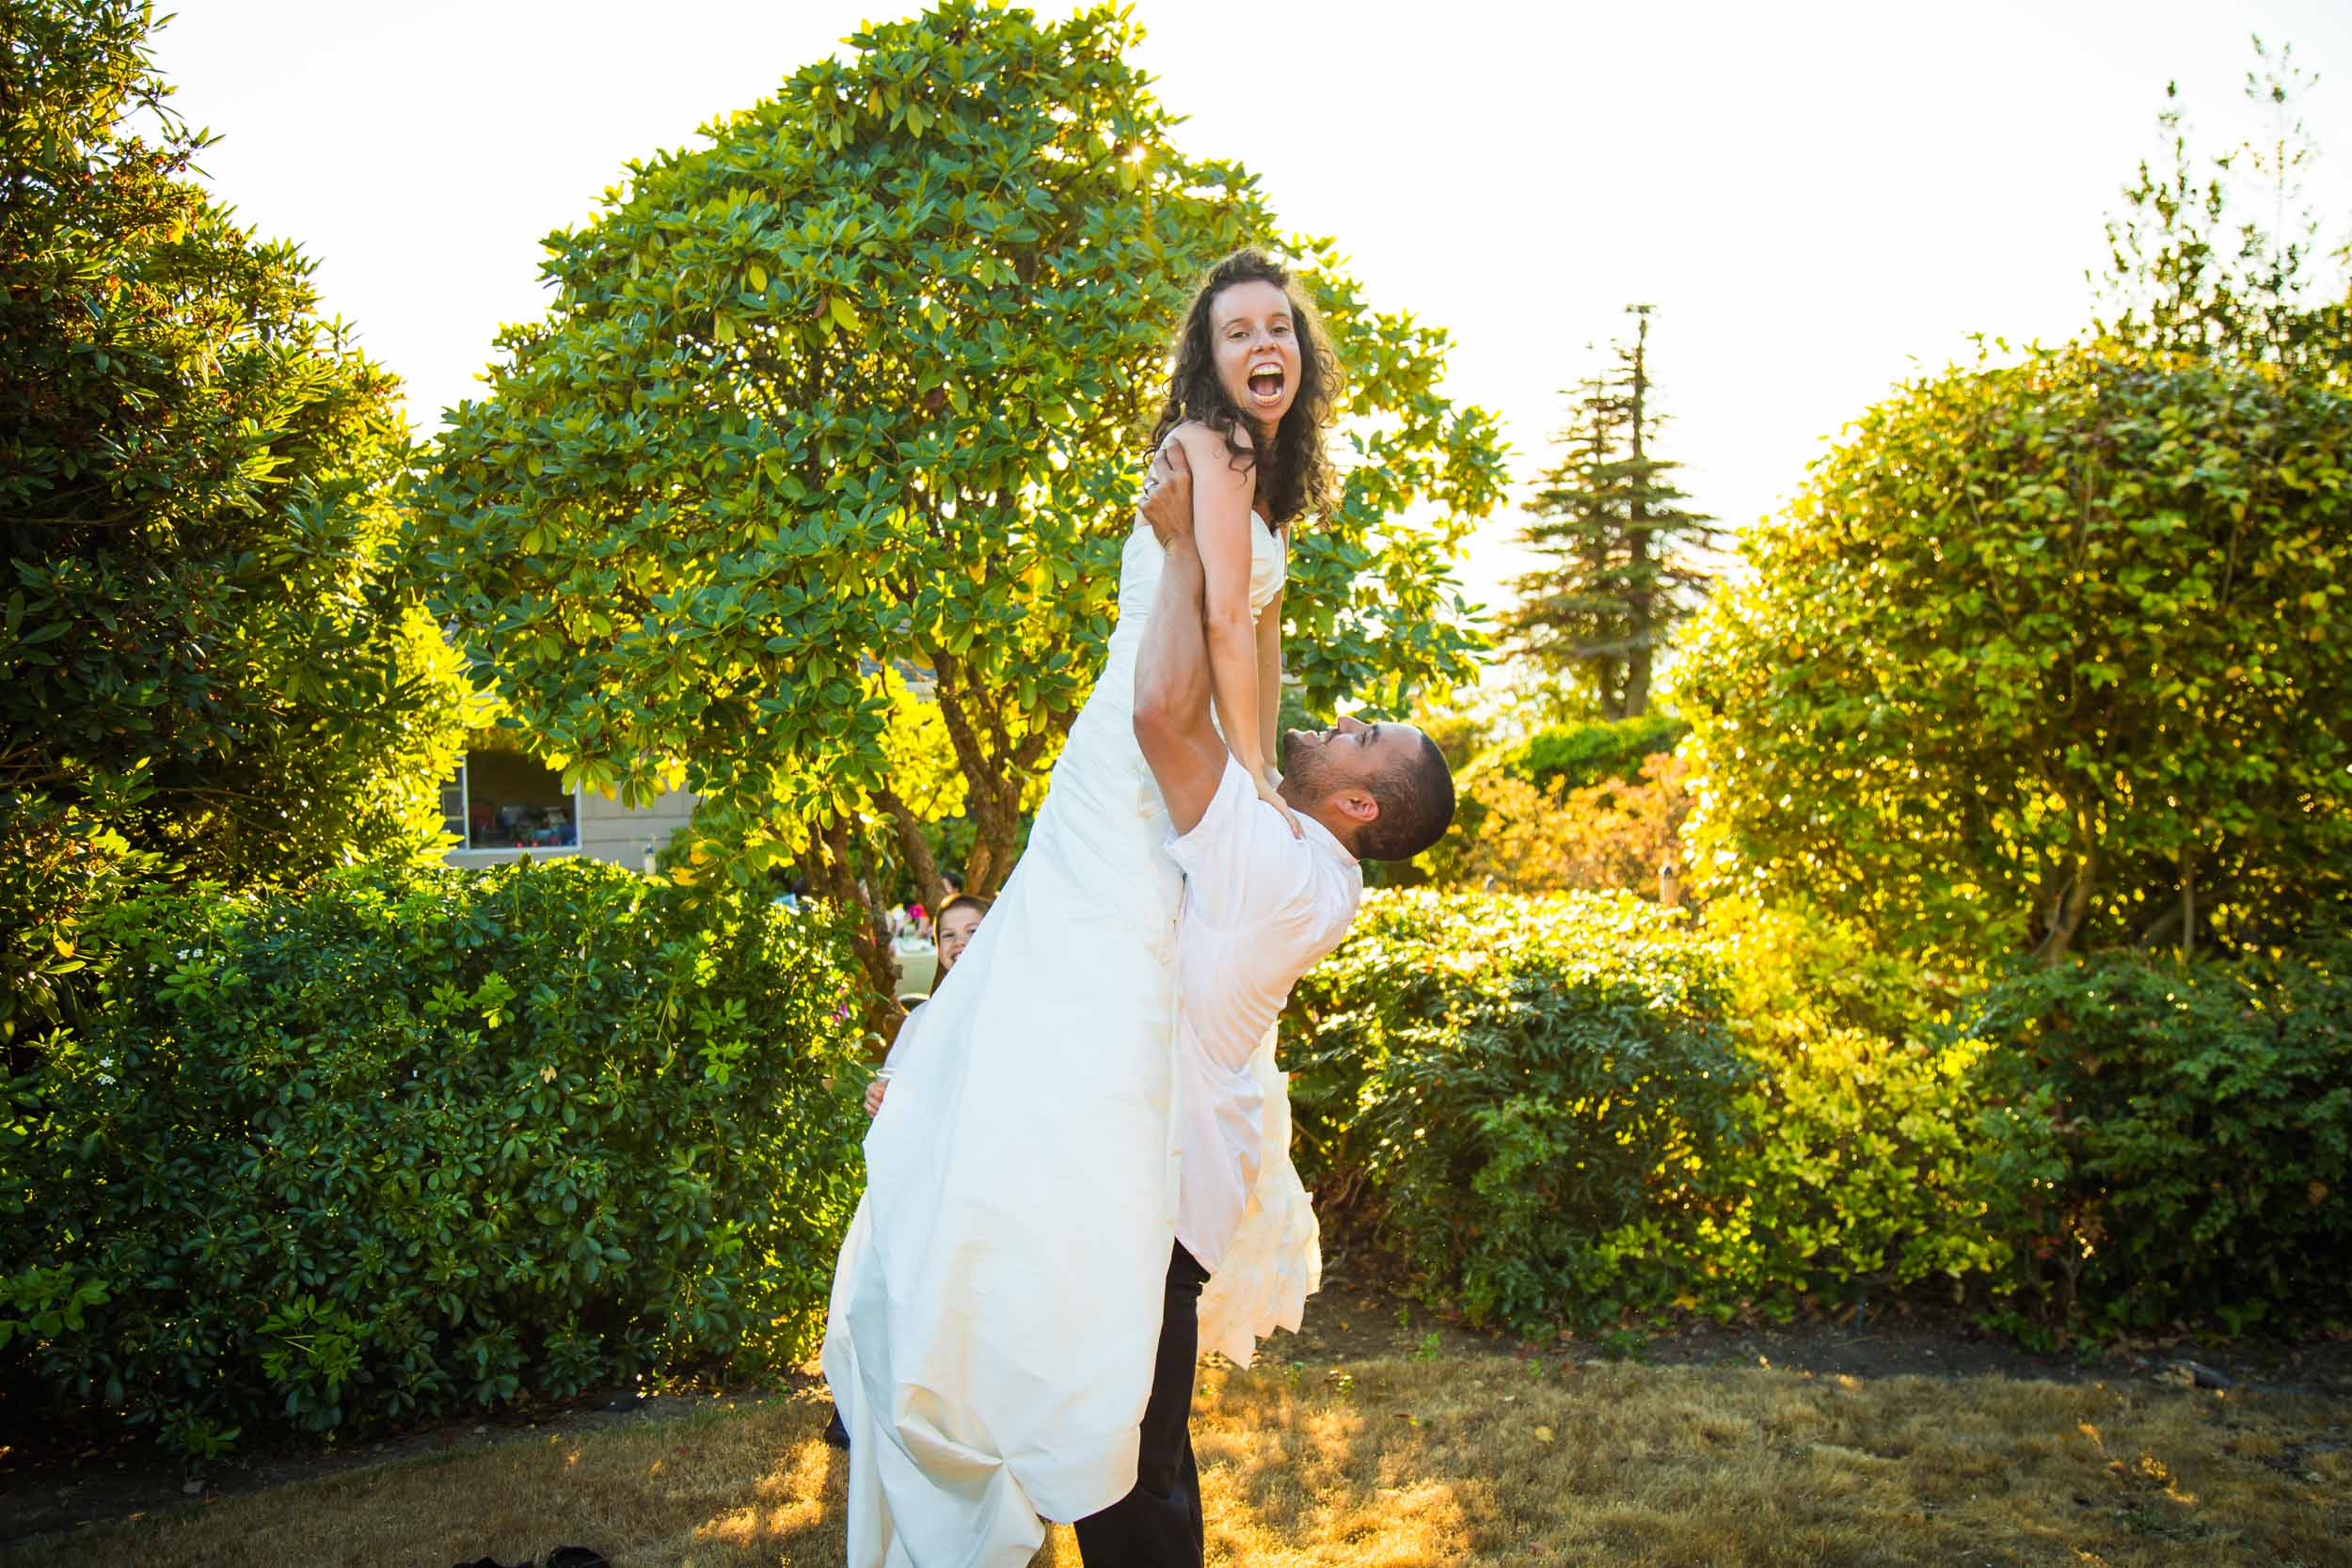 Seattle Wedding Photographer | By G. Lin Photography | Groom holding up bride in garden wedding